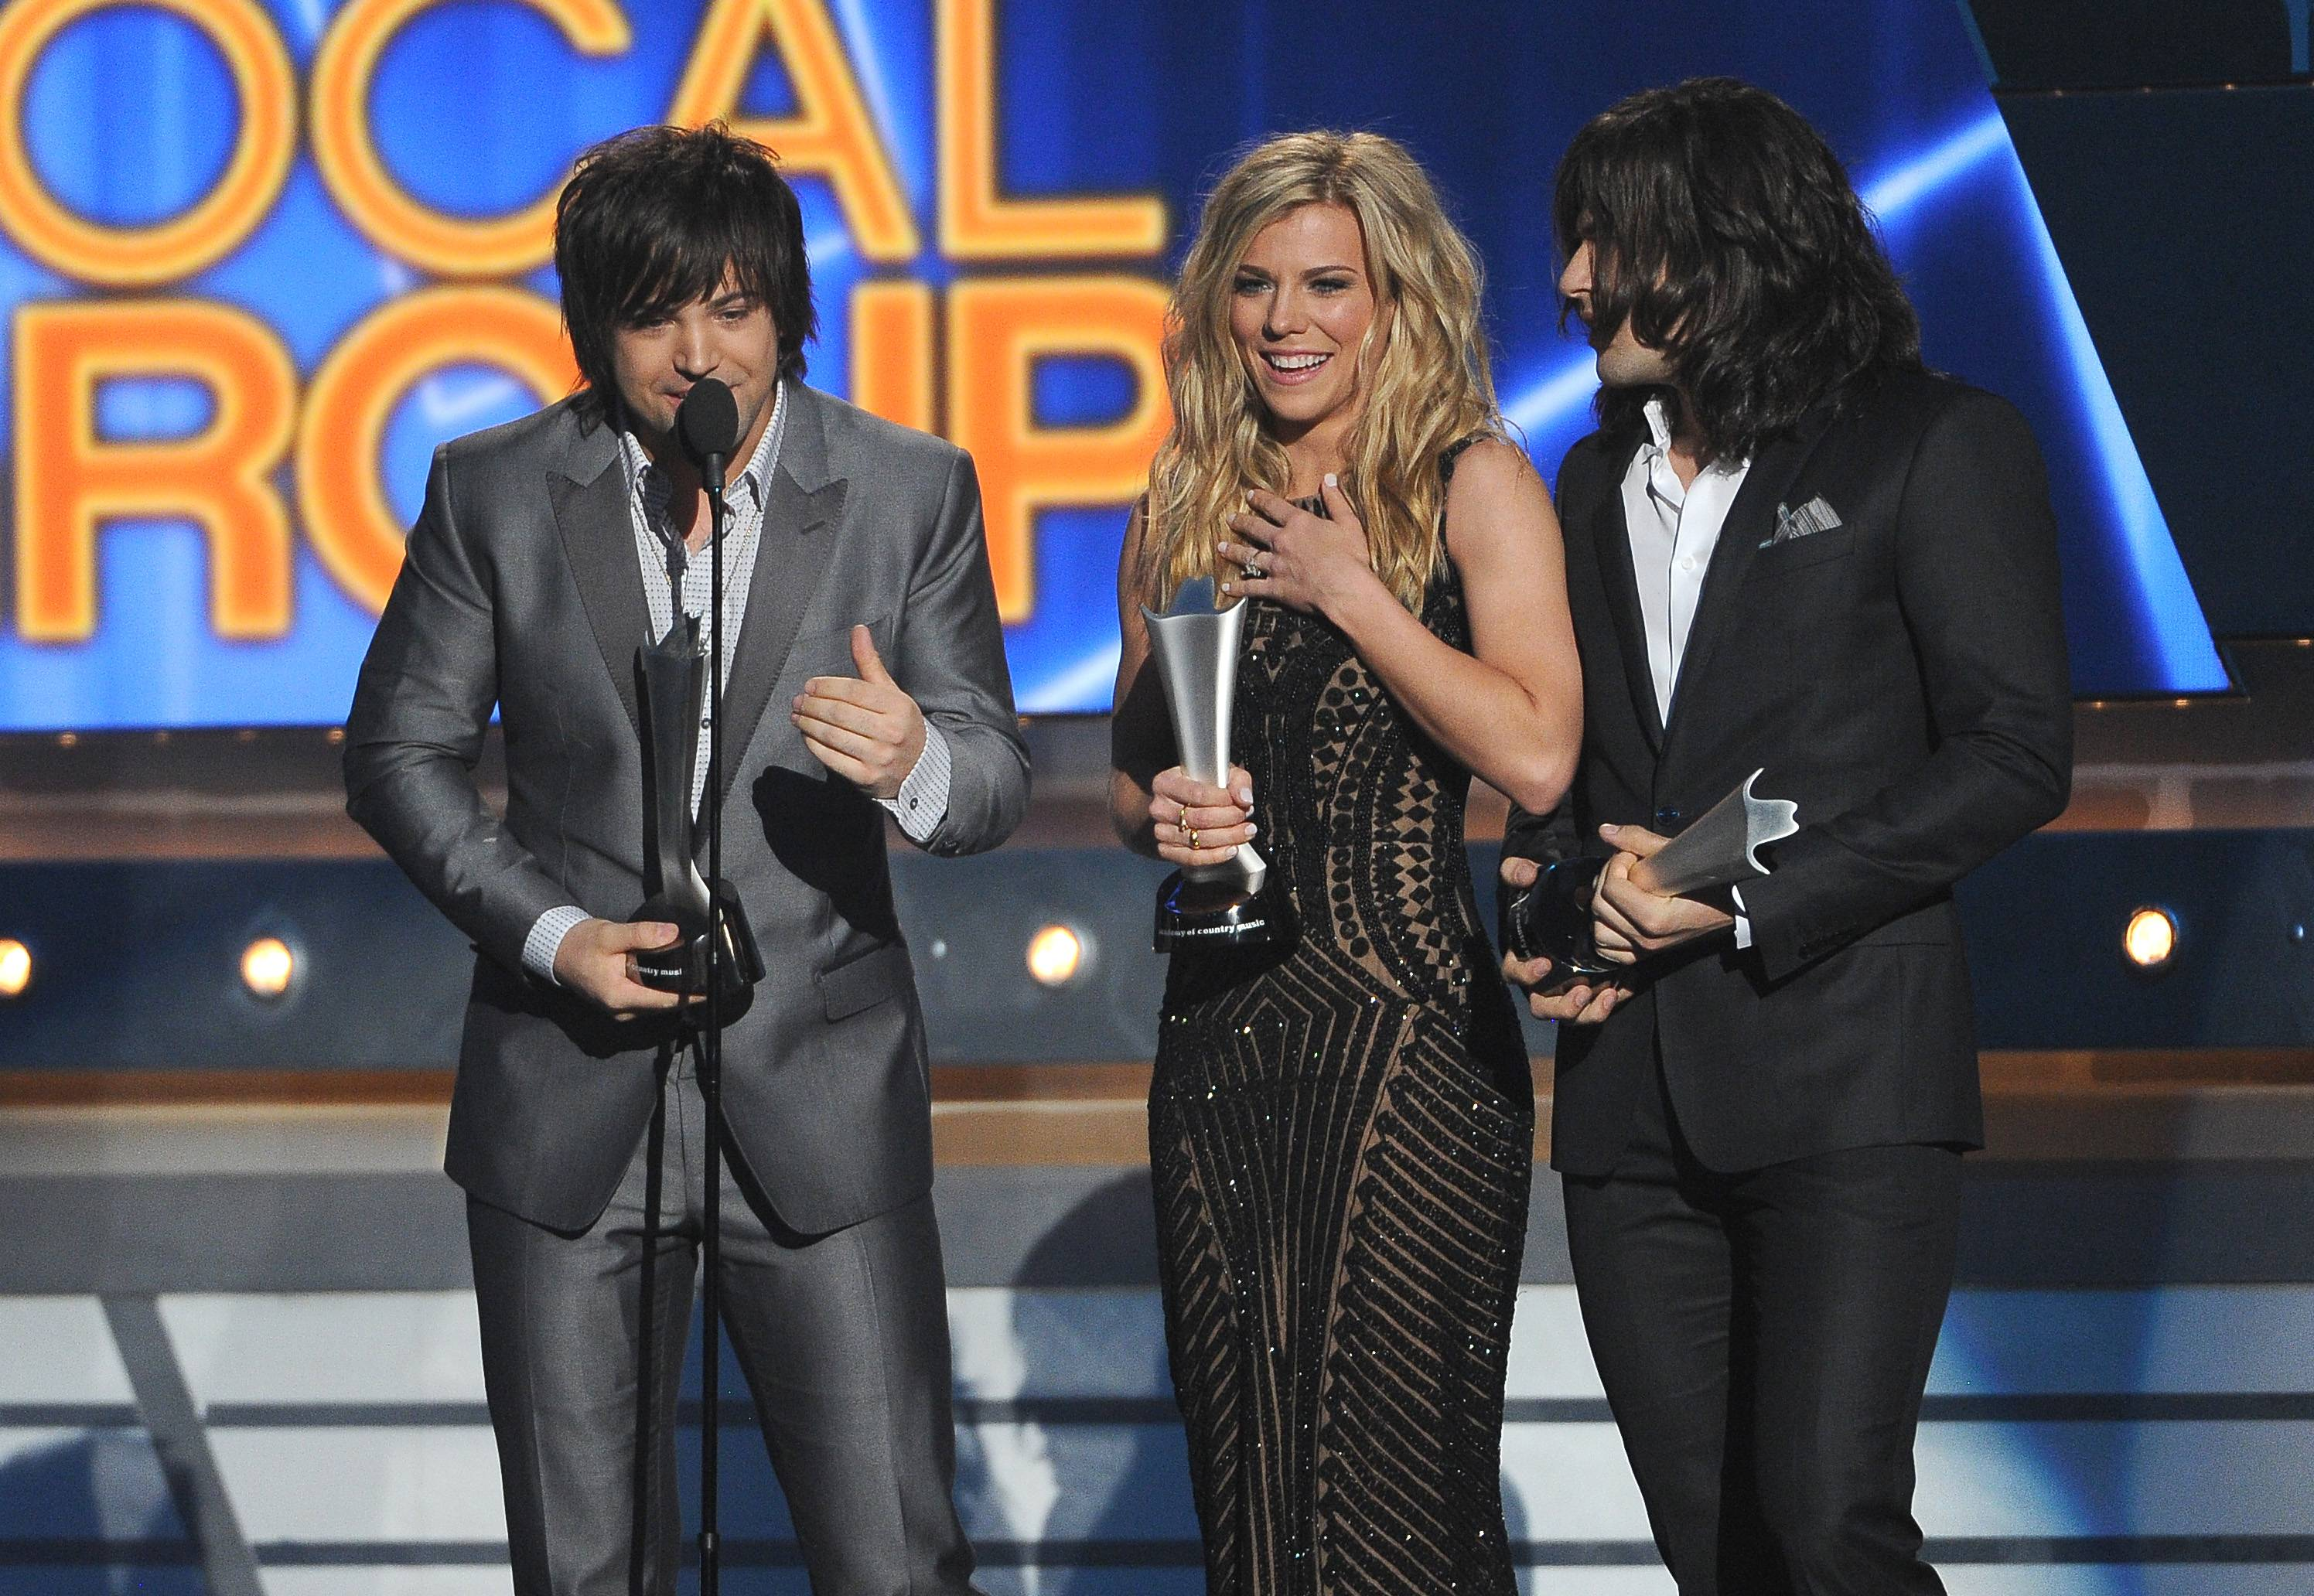 Neil Perry, and from left, Kimberly Perry and Reid Perry, of the musical group The Band Perry, accept the award for vocal group of the year at the 49th annual Academy of Country Music Awards.